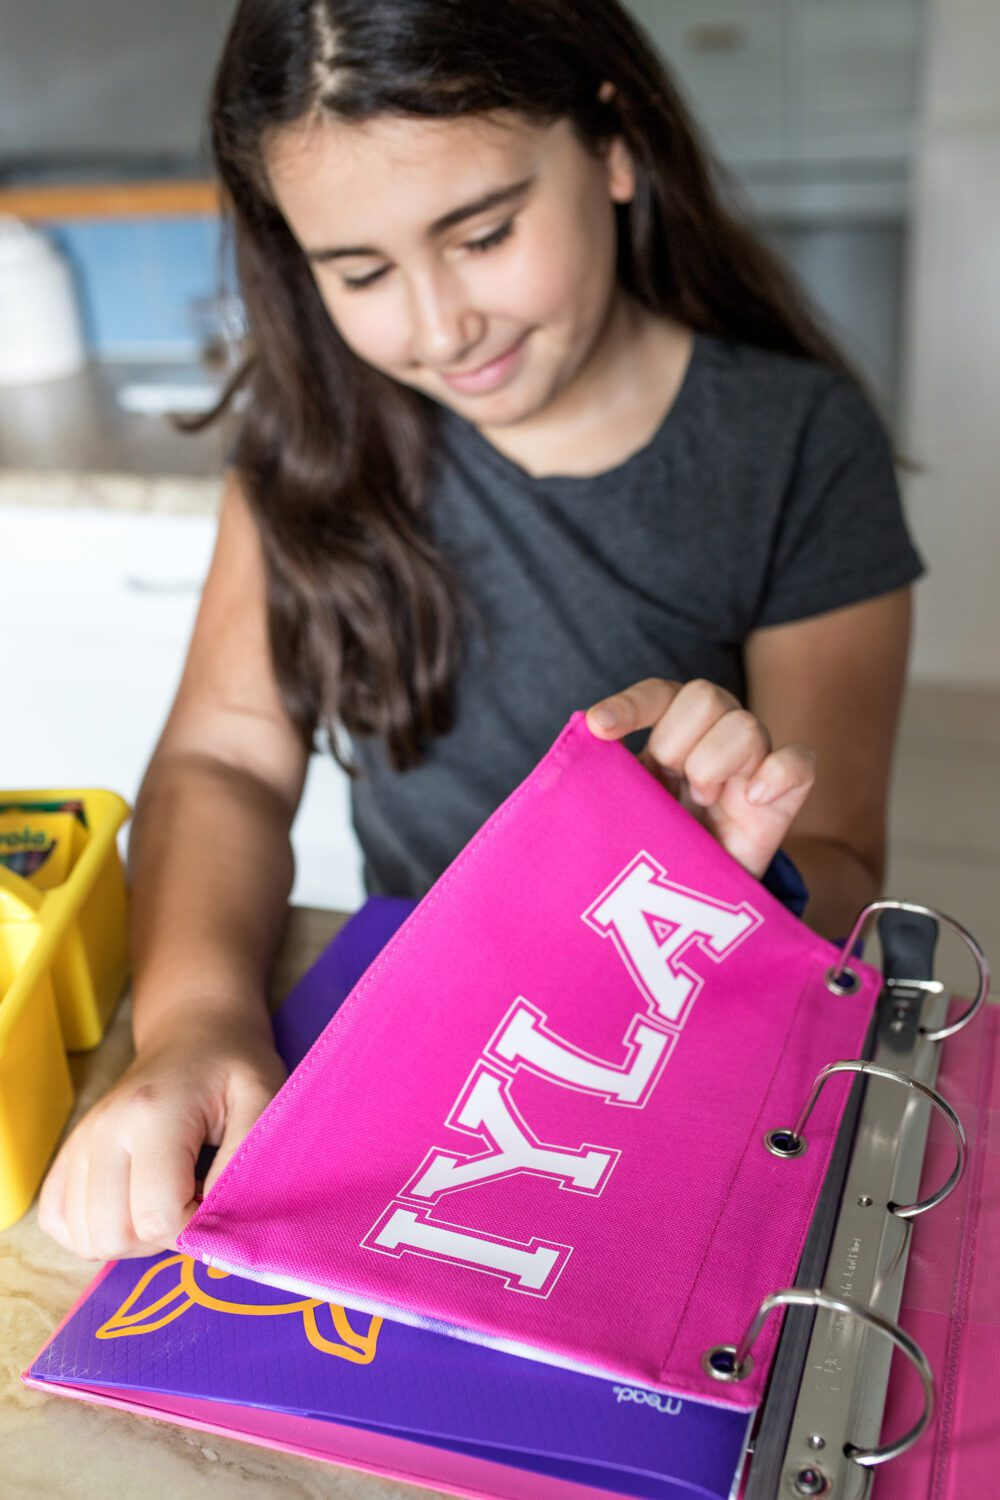 girl holding a personalized pencil pouch